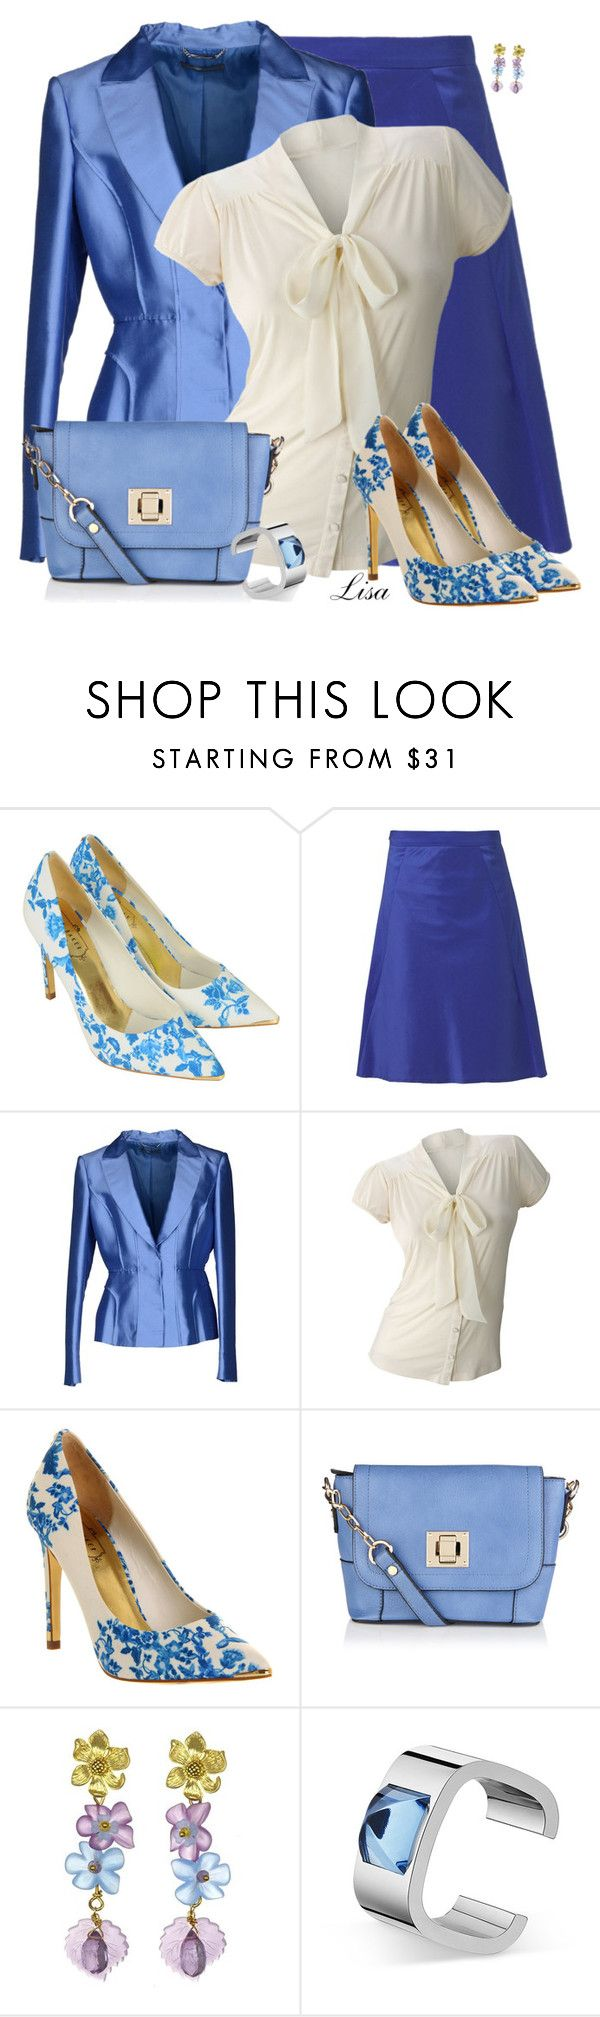 """""""Ted Baker High Heels"""" by lmm2nd ❤ liked on Polyvore featuring Ted Baker, Daniel Hechter, Alberta Ferretti, Oasis, contest, Blue, tedbaker and polyvoreeditorial"""